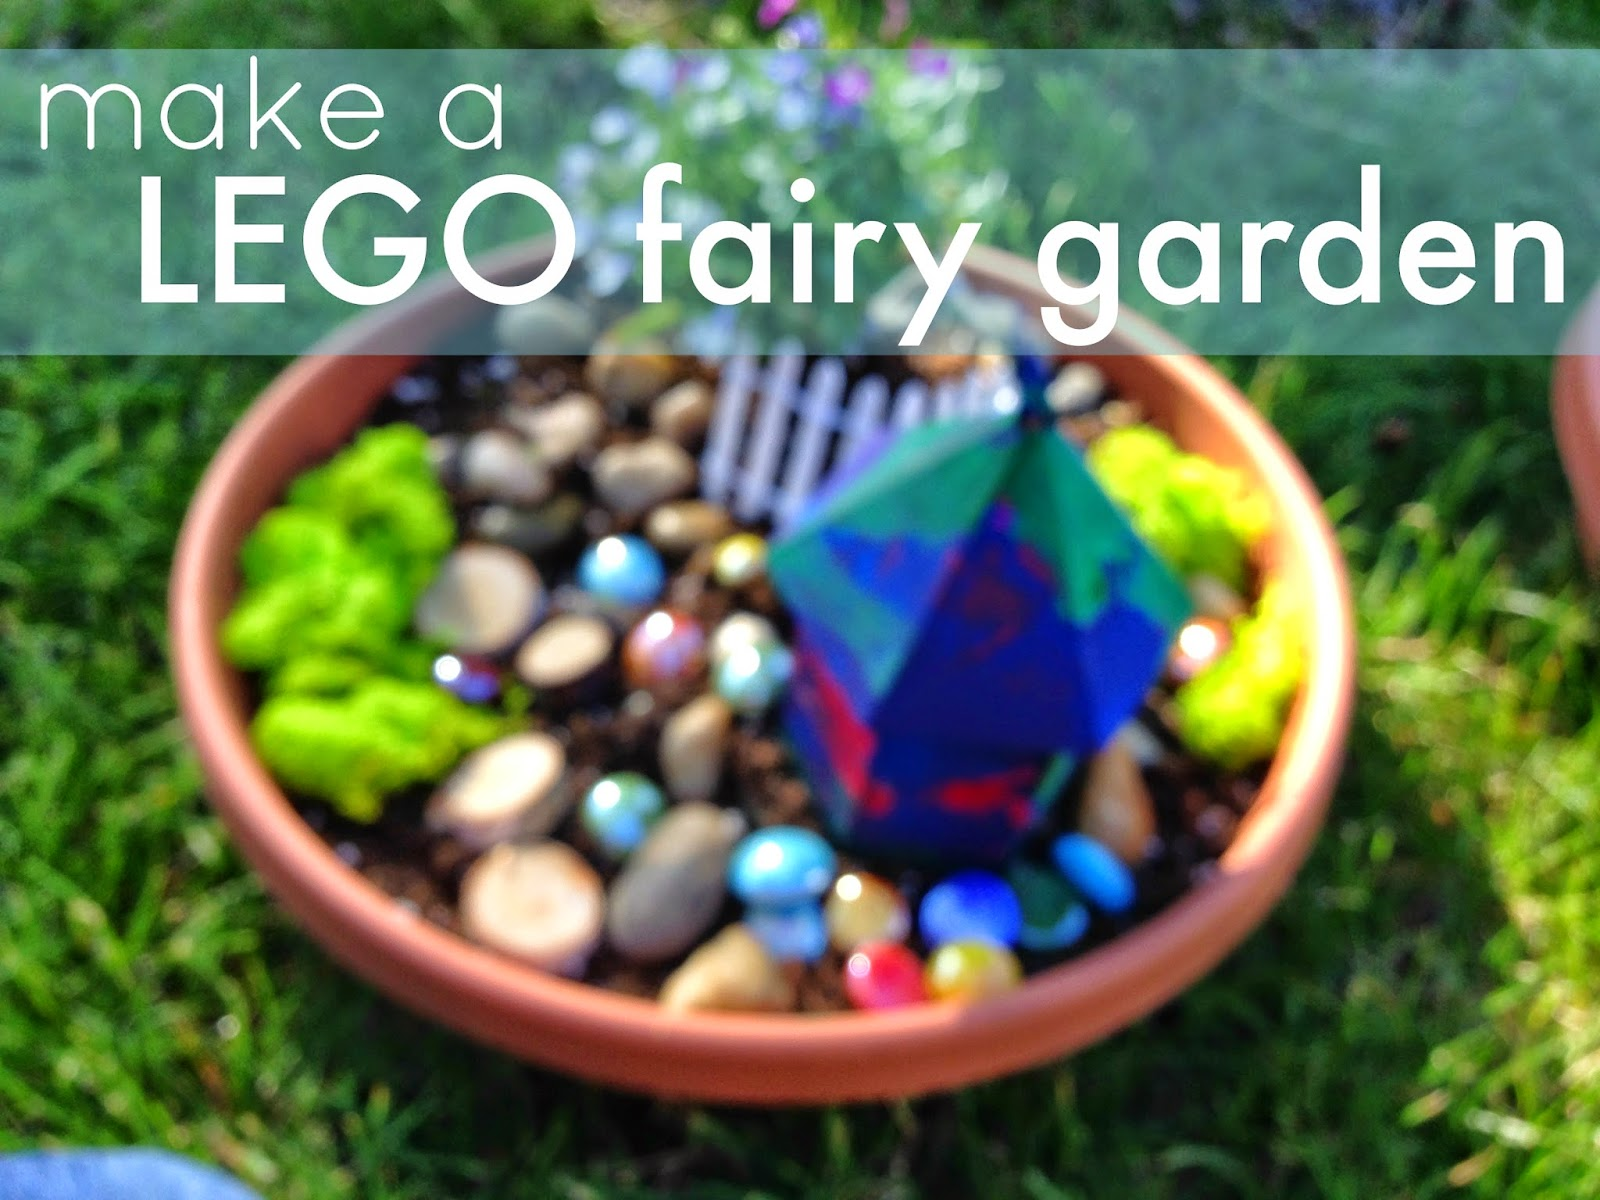 Have You Ever Made A Fairy Garden? I Have Been Pinning Photos Of Fairy  Gardens For The Past Few Weeks On Our Garden Play And Learning Activities  Pinterest ...